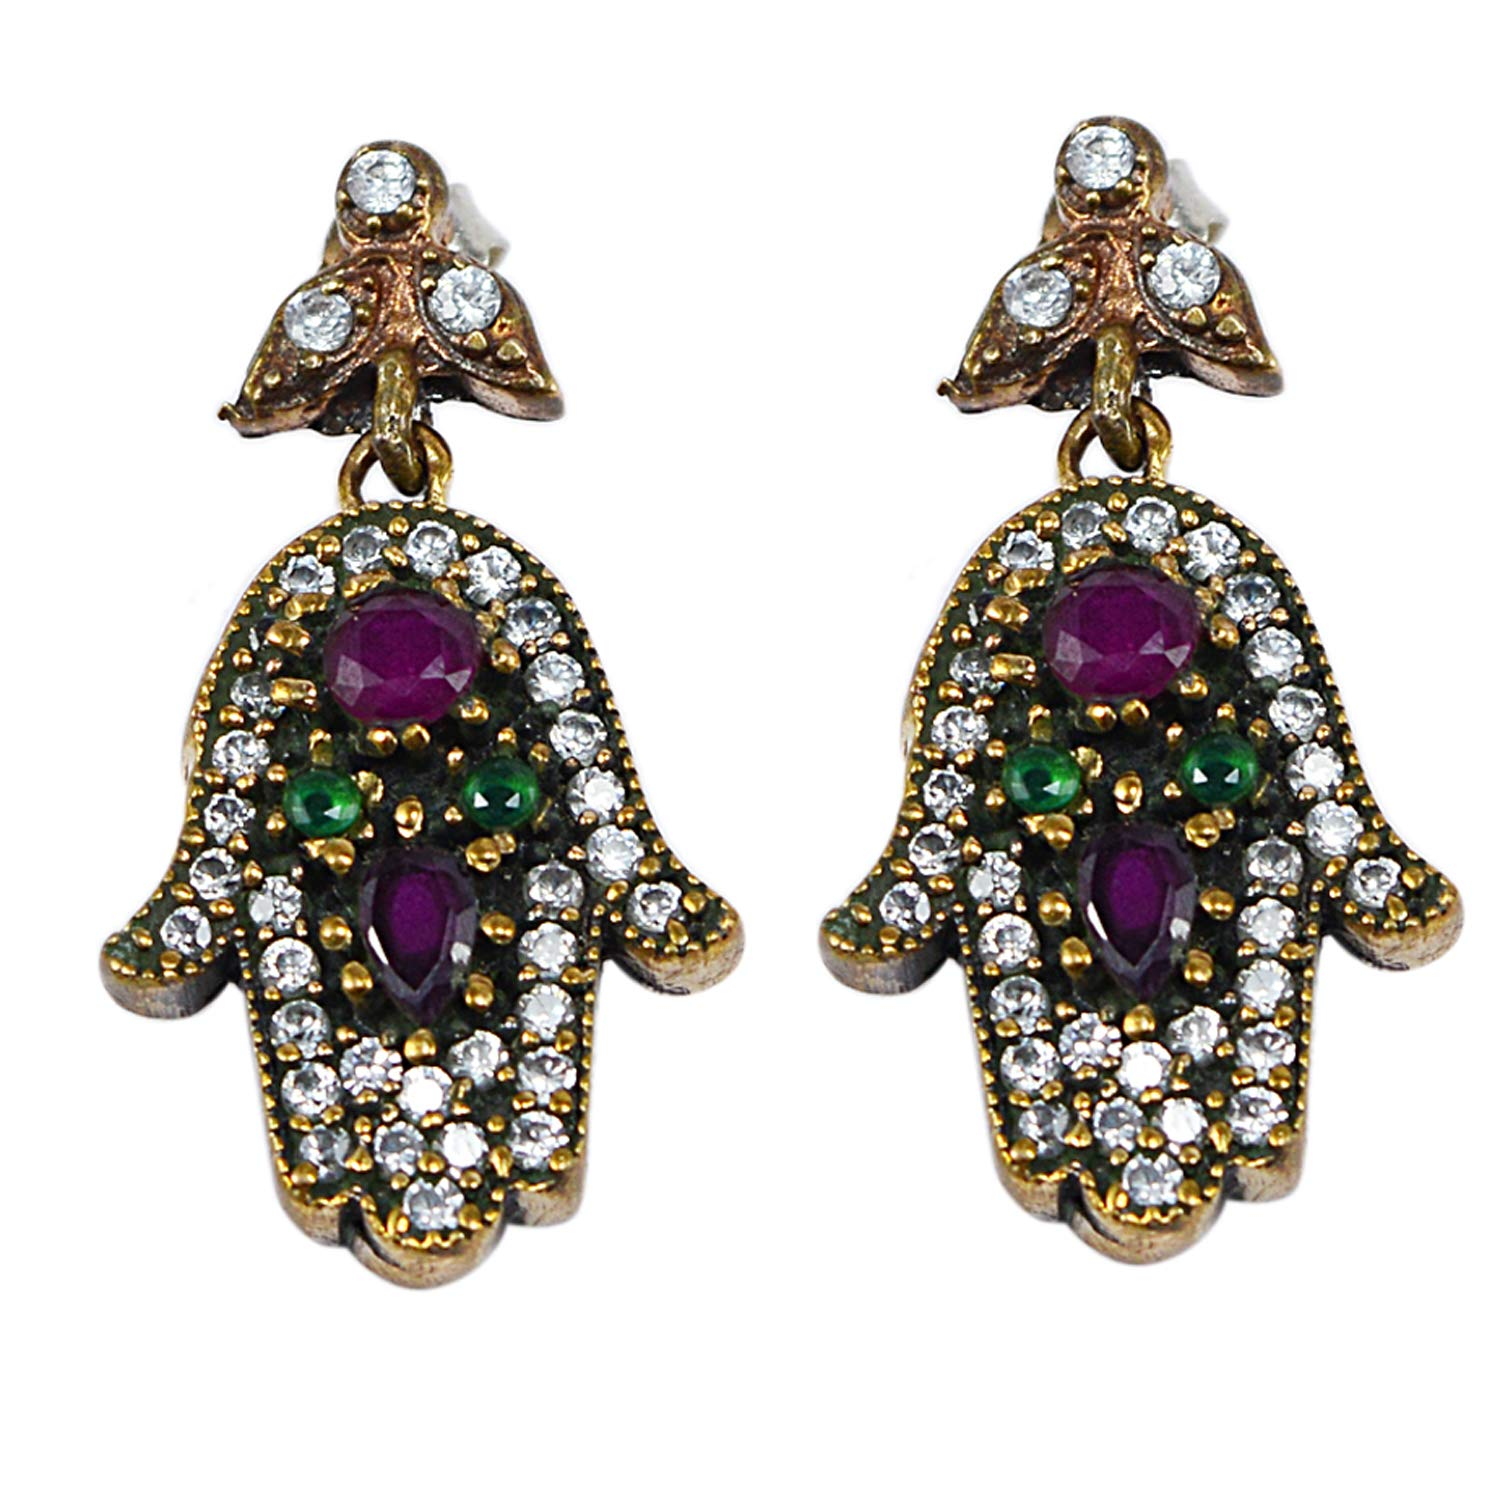 Emerald Saamarth Impex Ruby /& Topaz 925 Sterling Silver With Bronze Turkish Drop Earring PG-129932 Created